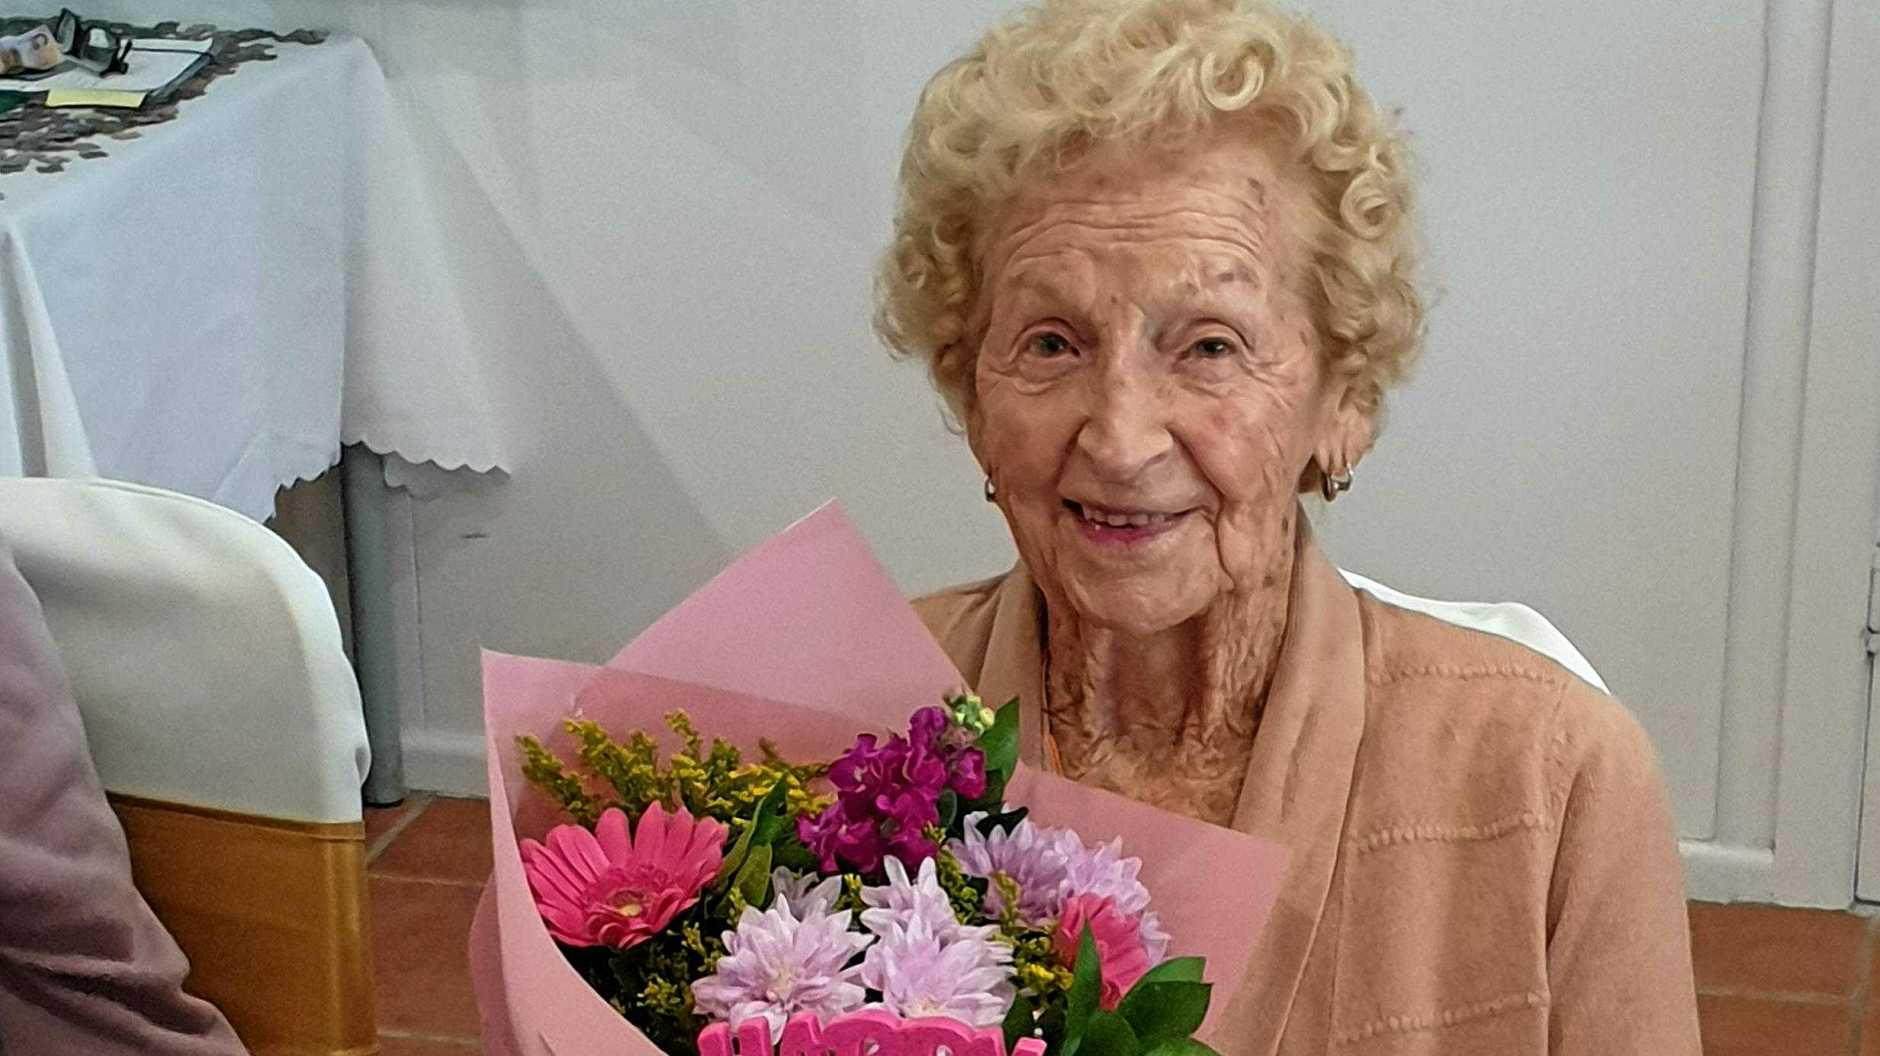 Elma May Wilkinson, born in Coraki NSW 100 years ago, celebrated her birthday recently with friends at Nerang's Liberty Community Connect Inc.